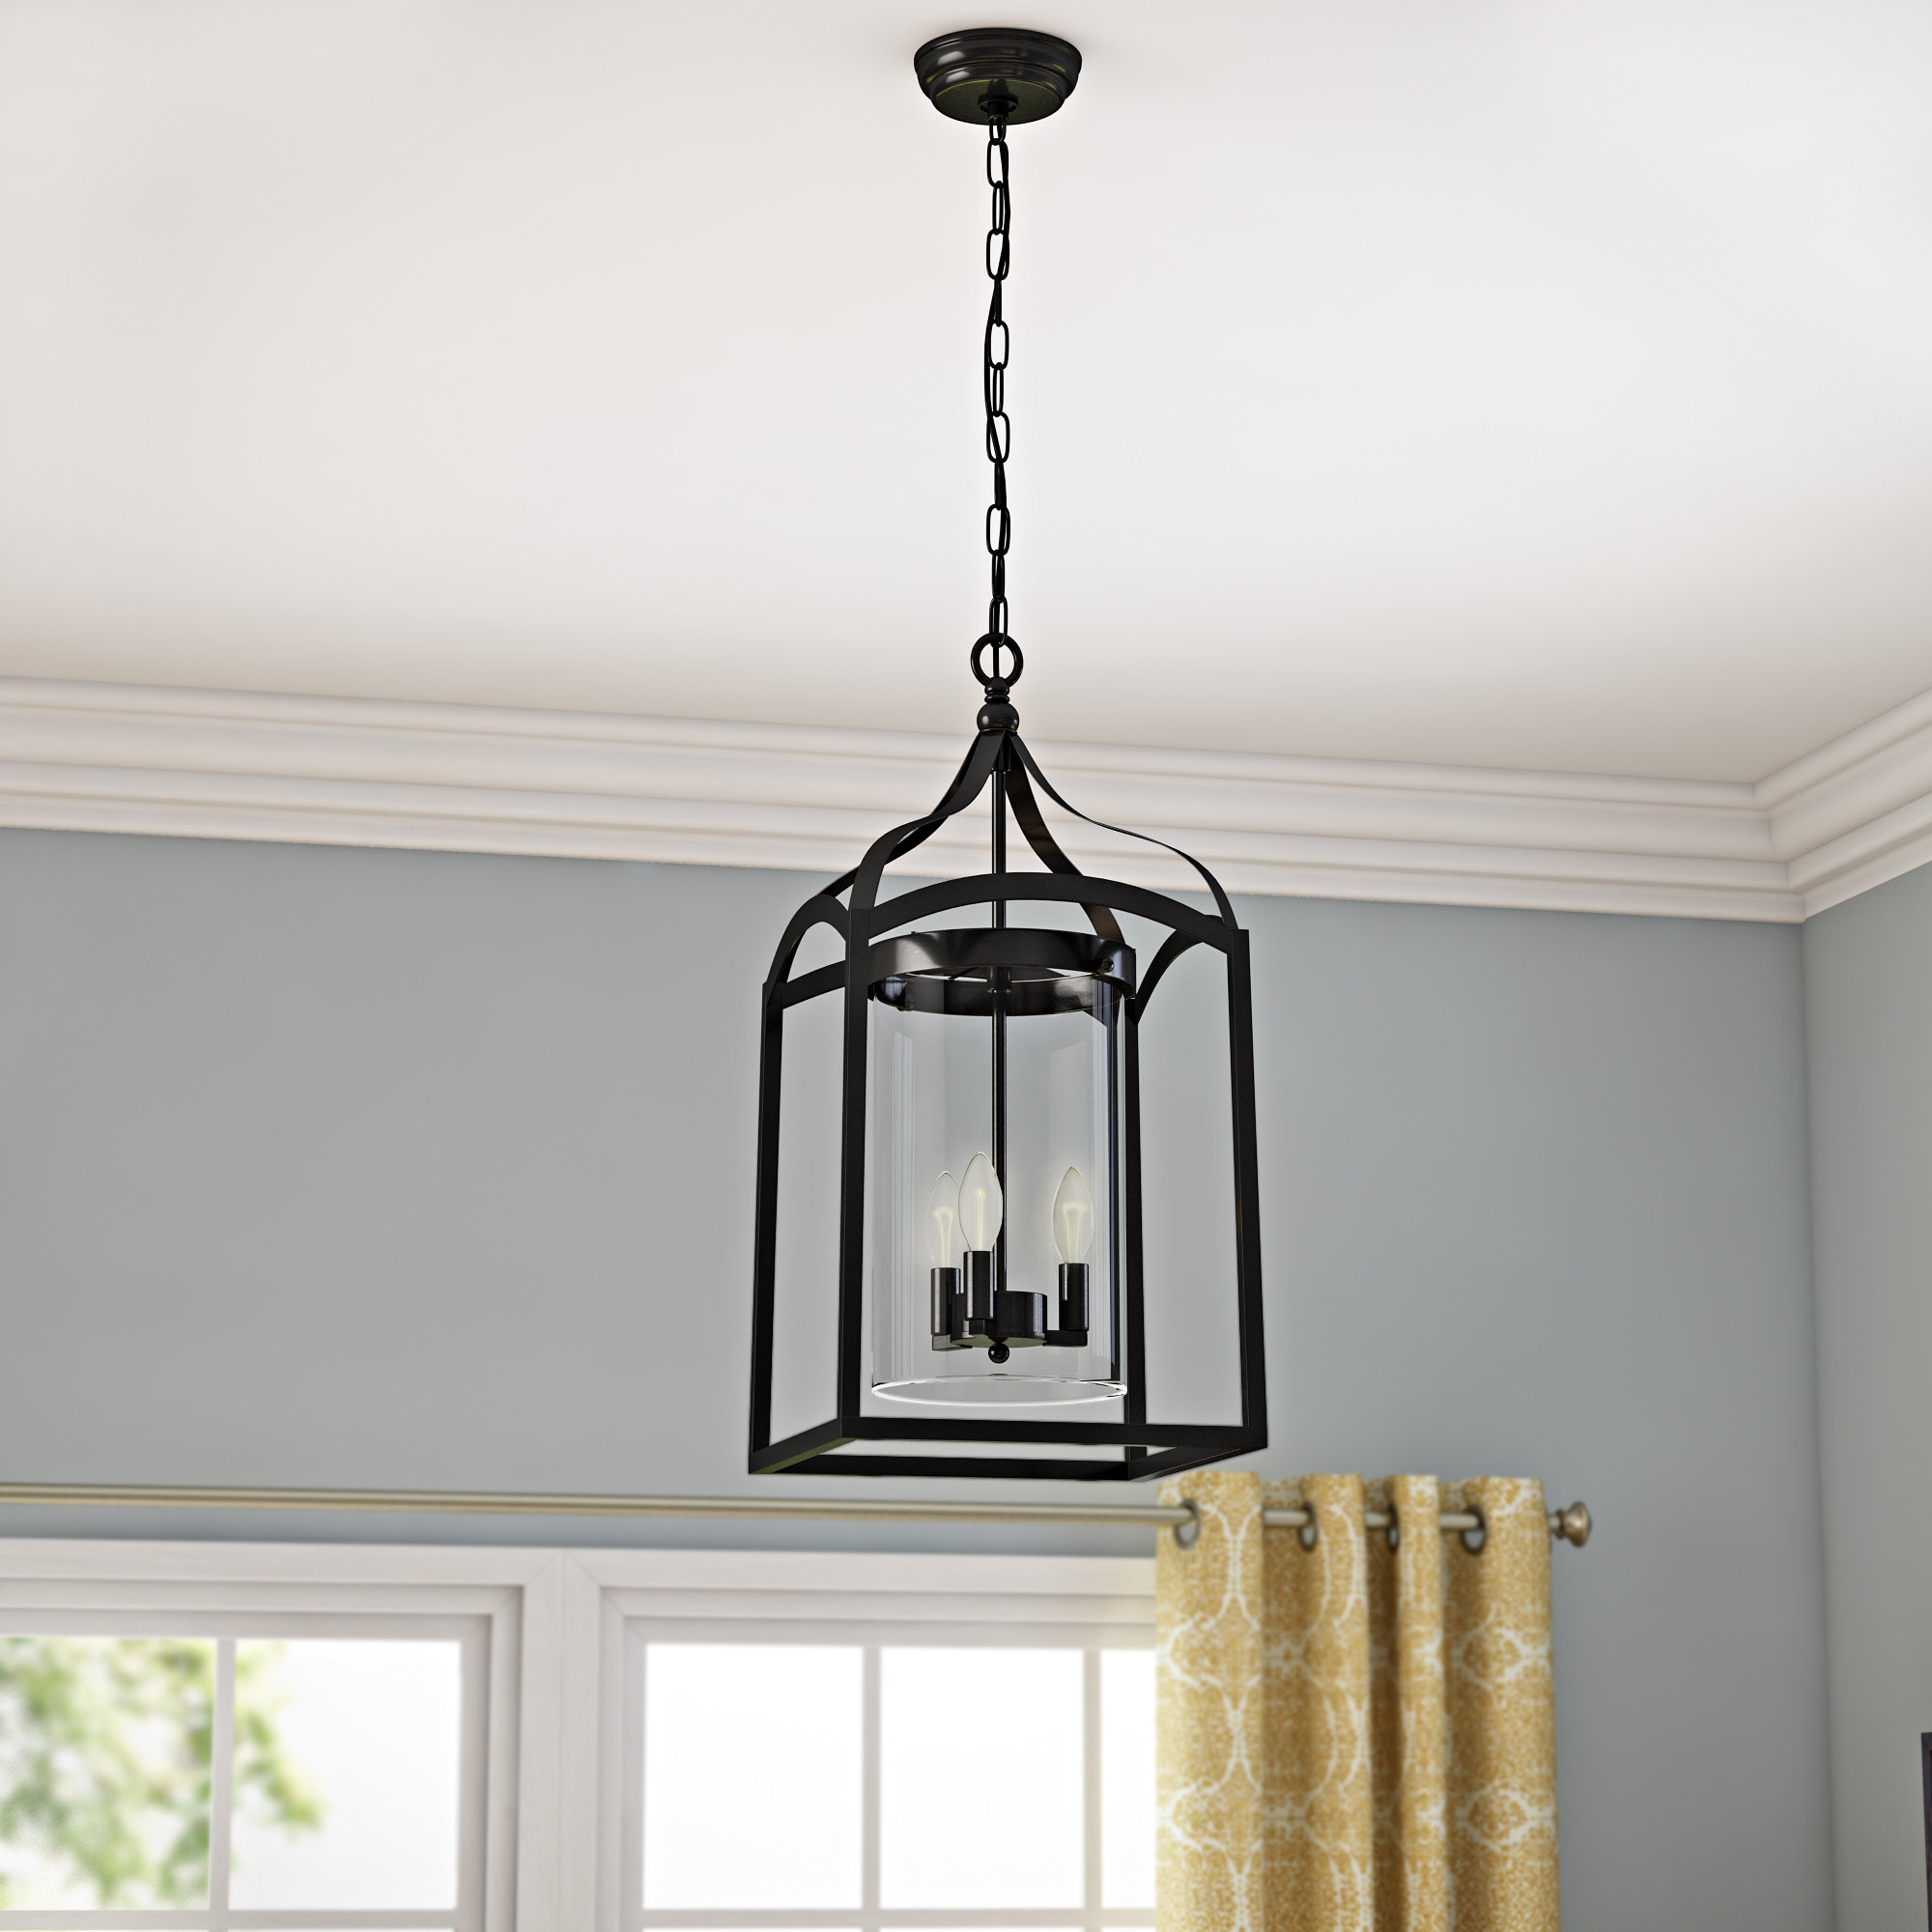 Ericsson 3 Light Lantern Square Pendant Within Most Popular Sherri Ann 3 Light Lantern Square / Rectangle Pendants (Gallery 9 of 20)